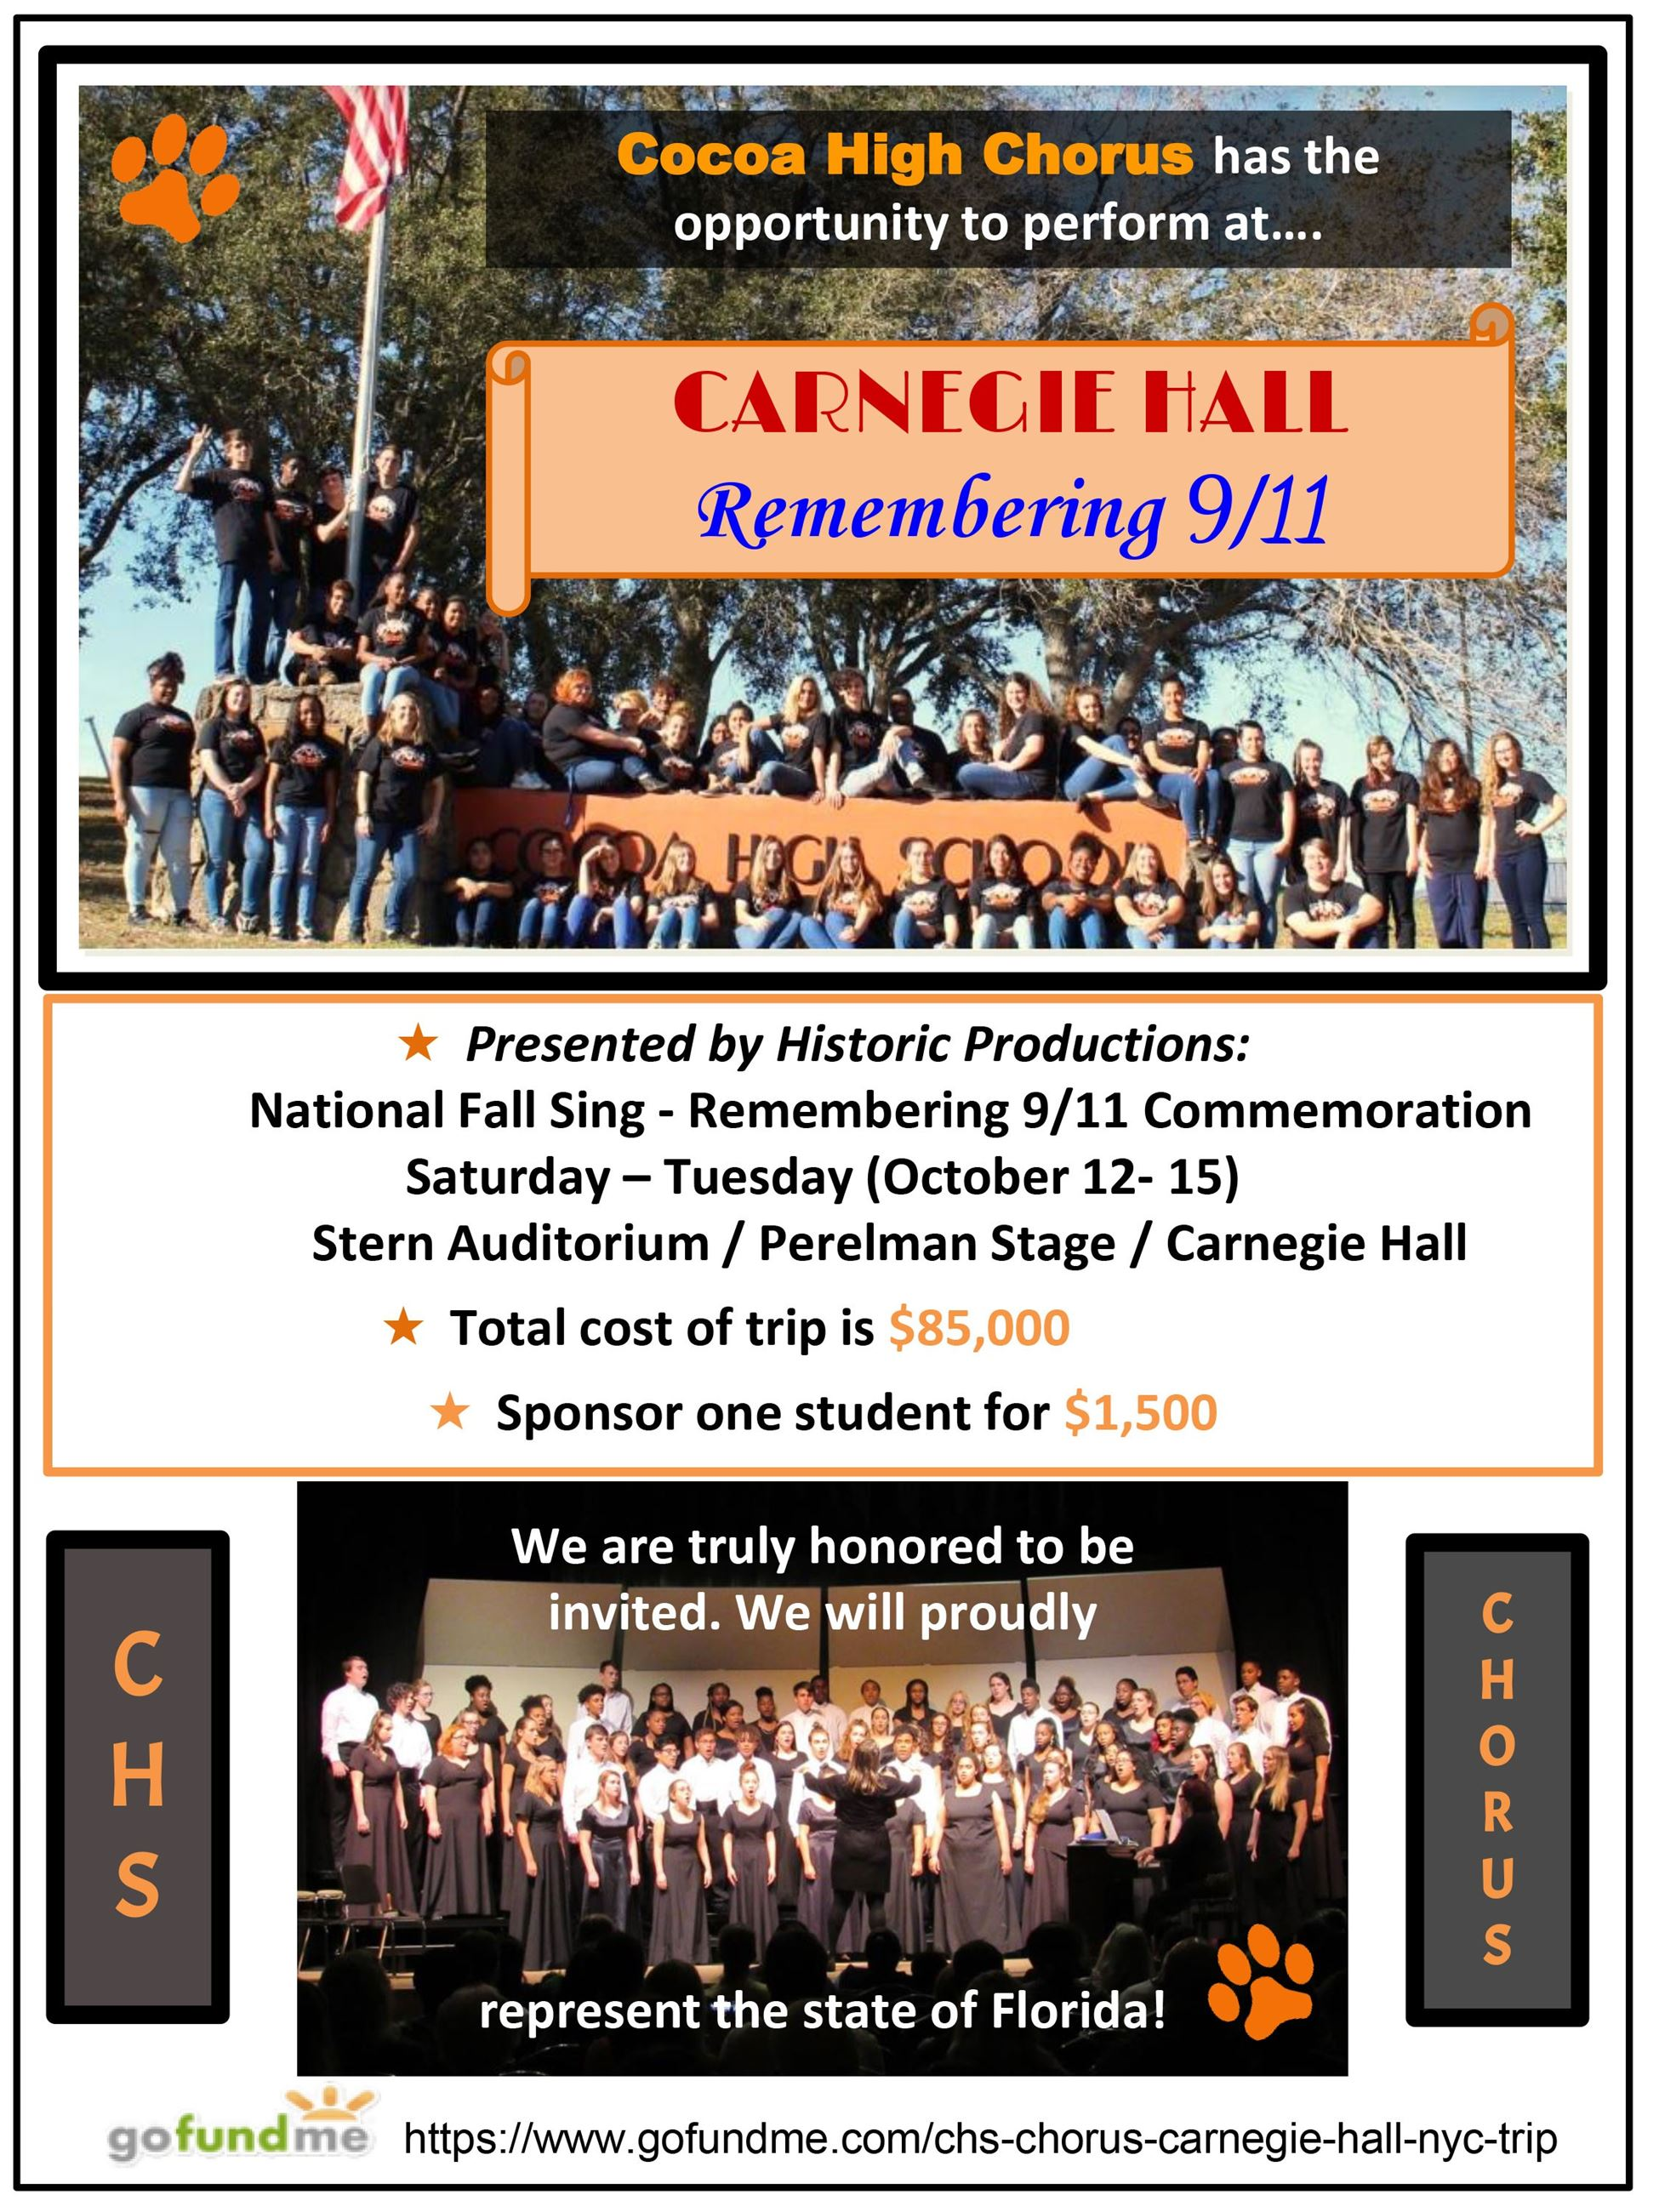 Flyer for the Cocoa High School Chorus to Attend a Special 9/11 Performance at Carnegie Hall